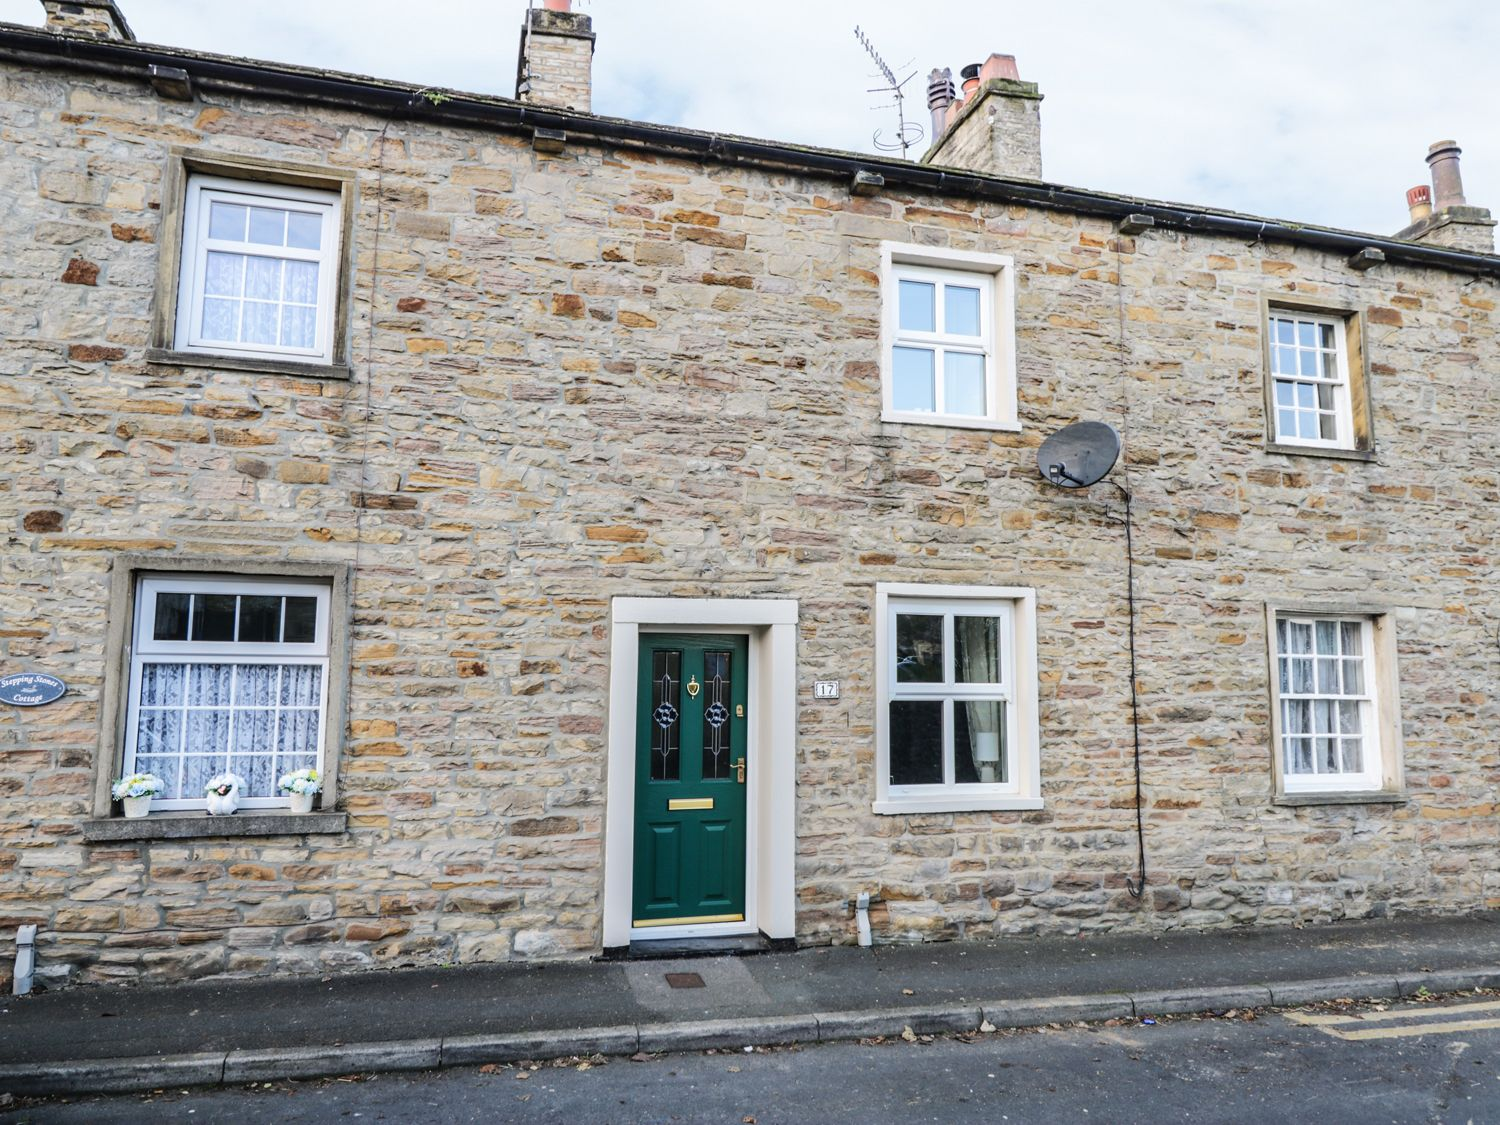 Riverstone Cottage ( Ref 969987 ) Gargrave near Skipton holiday cottage in Yorkshire Dales